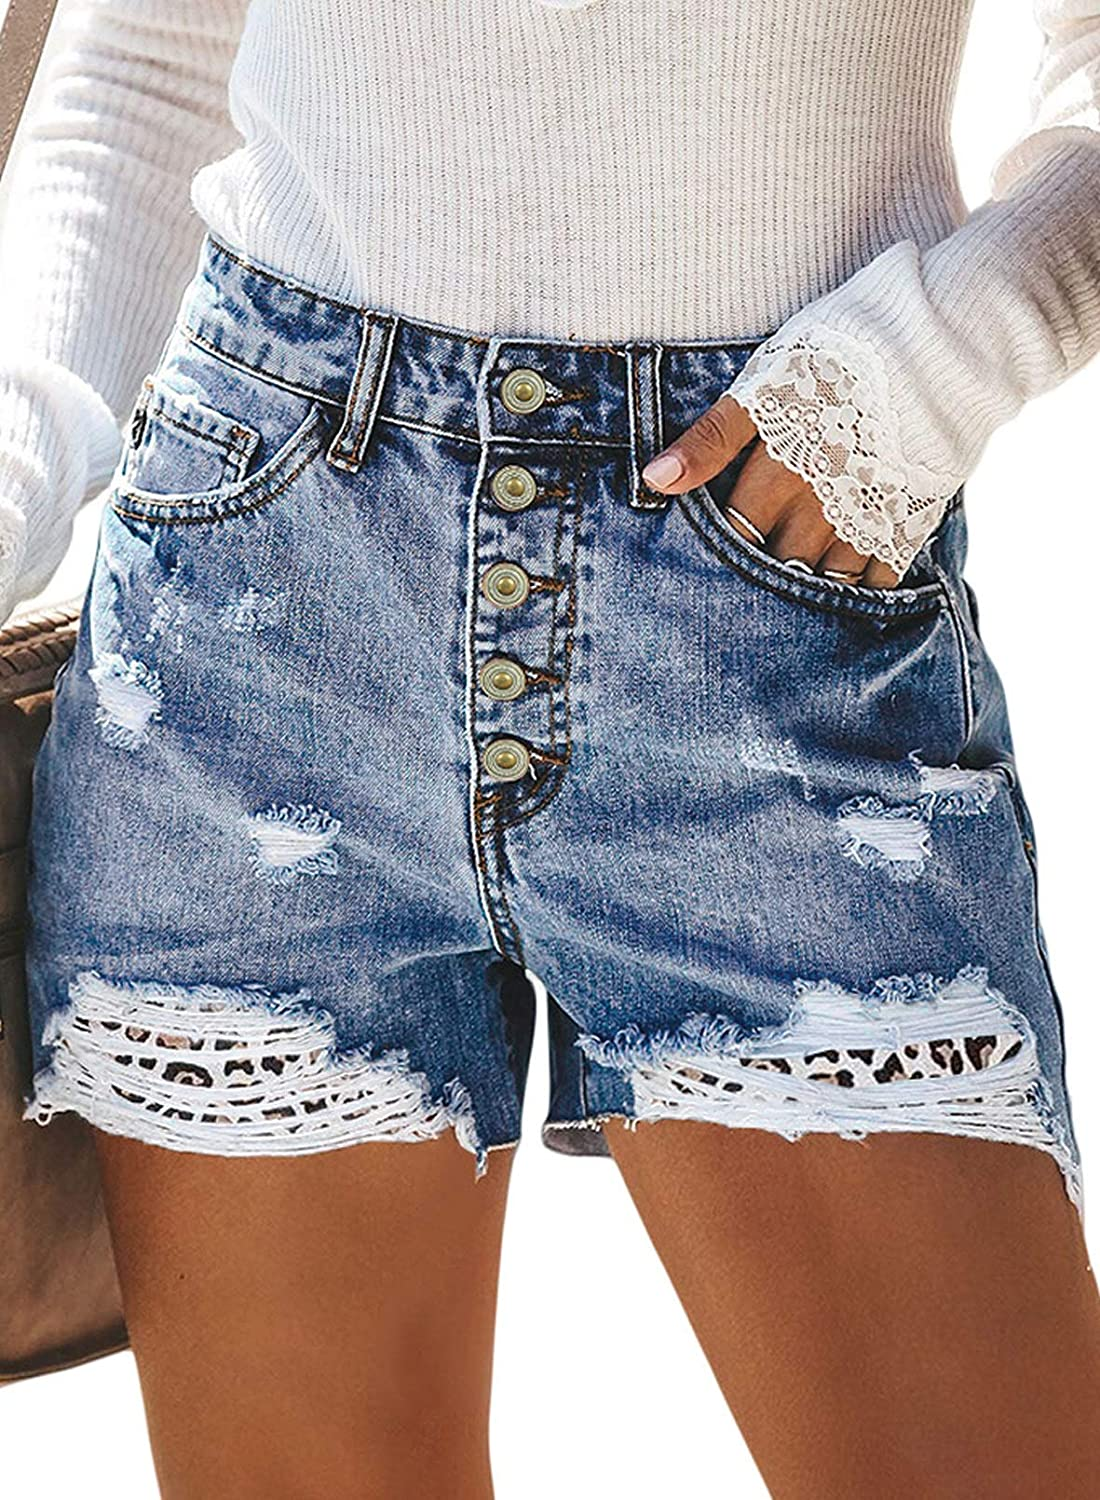 Dokotoo Women's Casual Ripped Denim Jean Shorts High Waisted Short Pants with Pockets